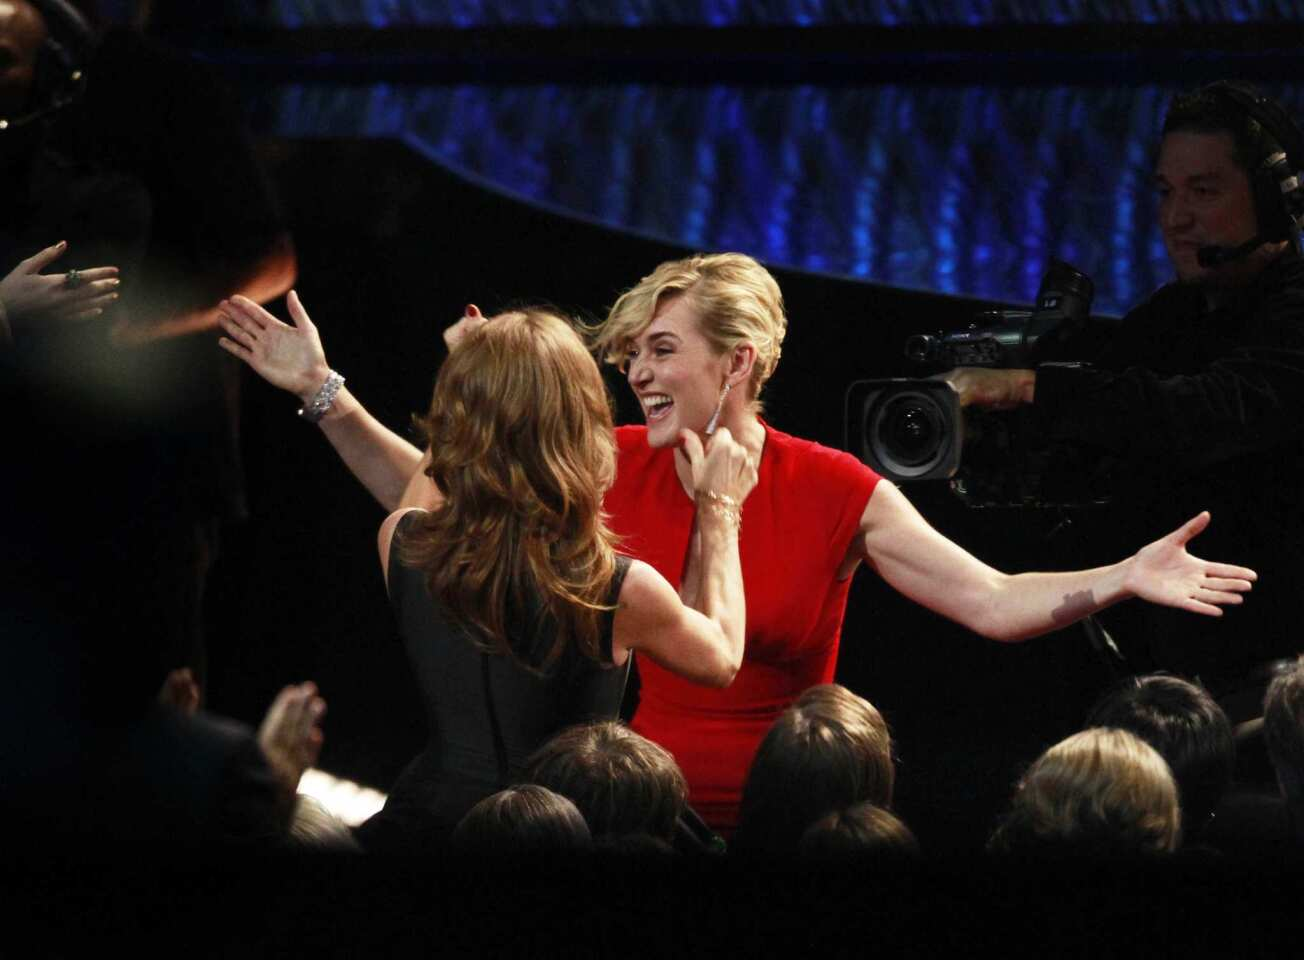 The 2011 Emmy Awards | The show